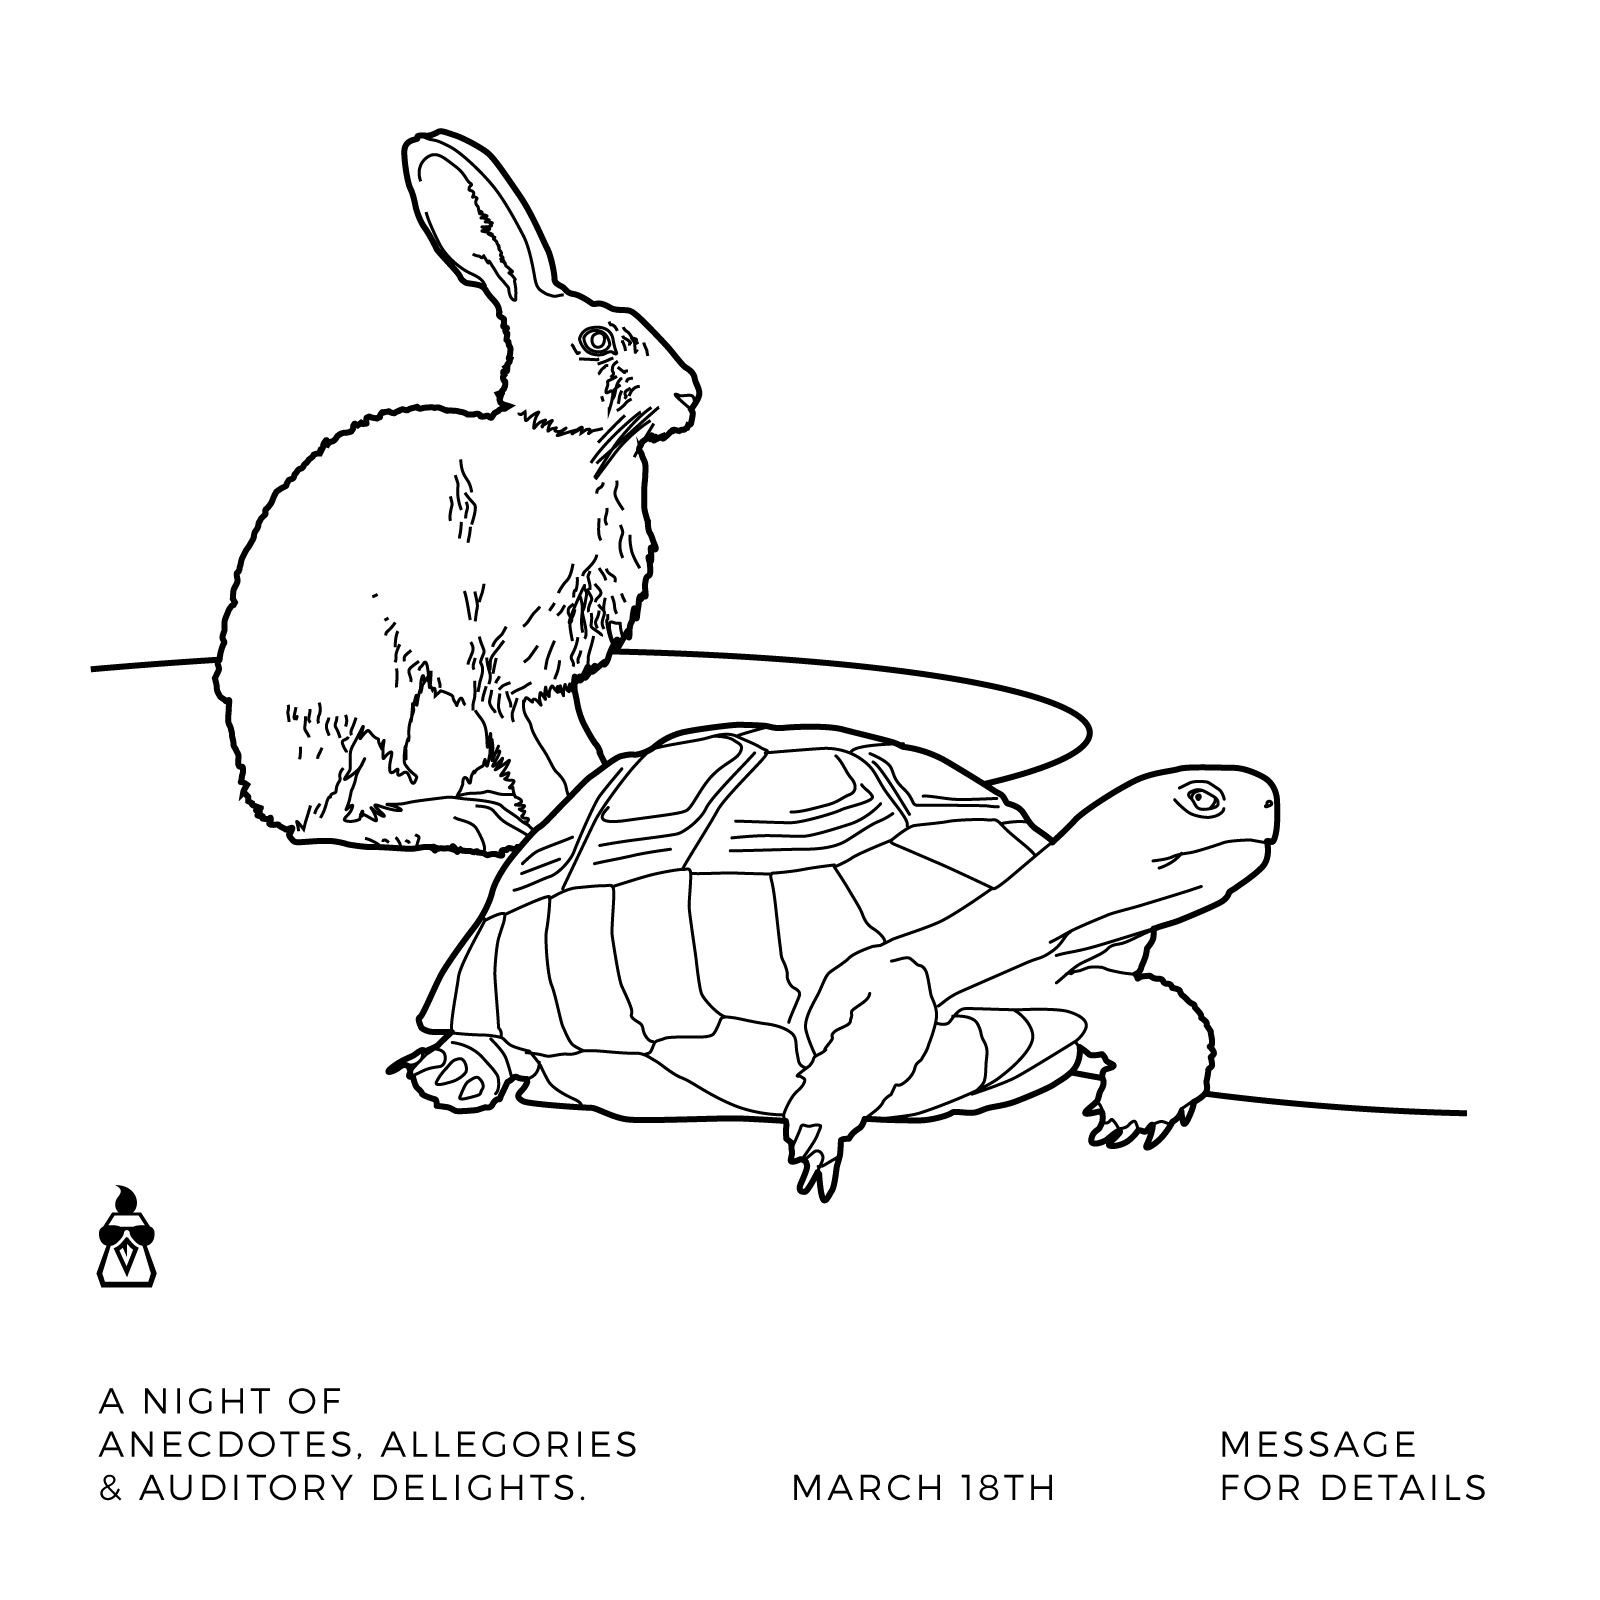 Tortoise and Hare Illustration